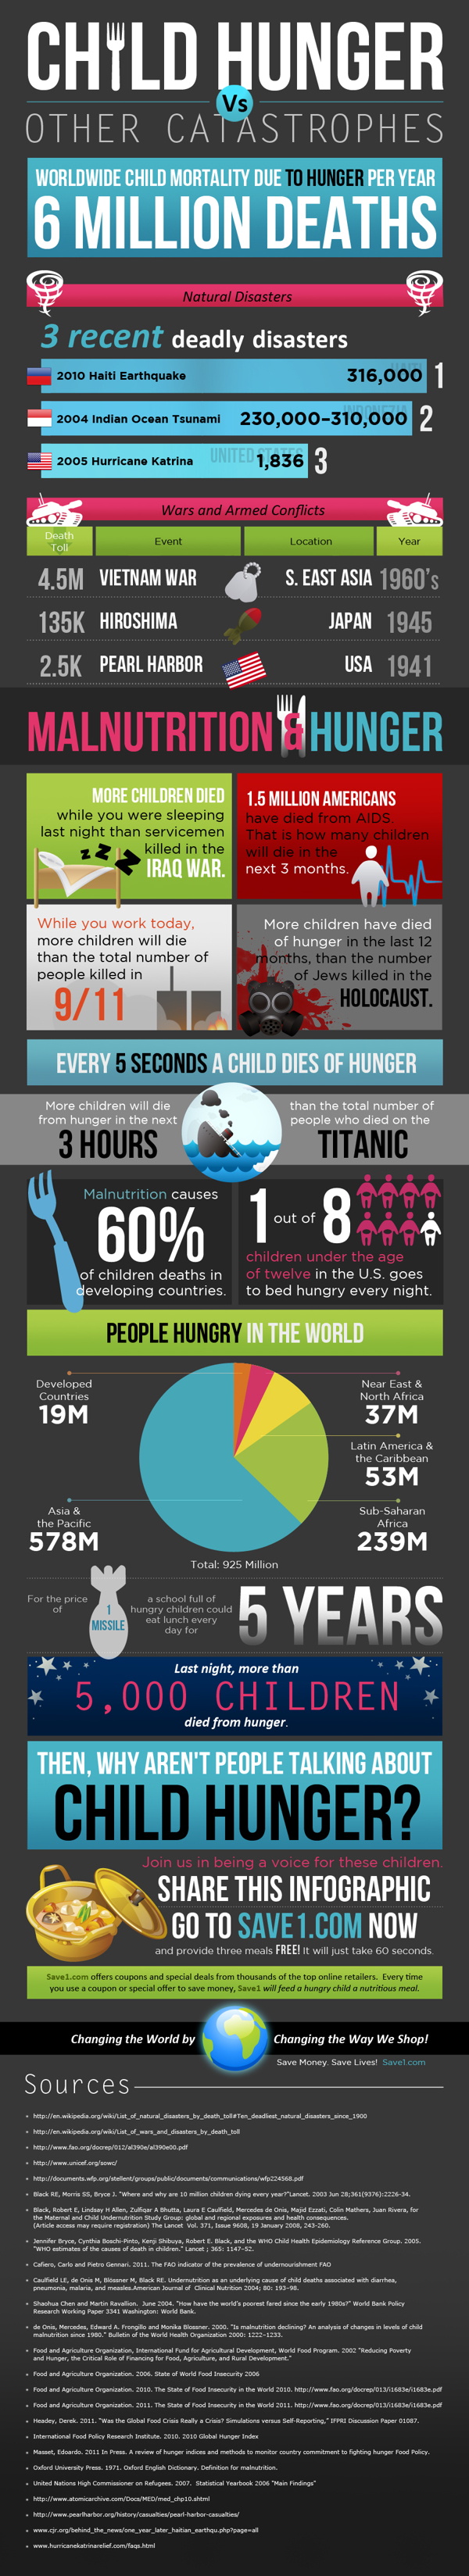 Child Hunger Vs Other Catastrophes